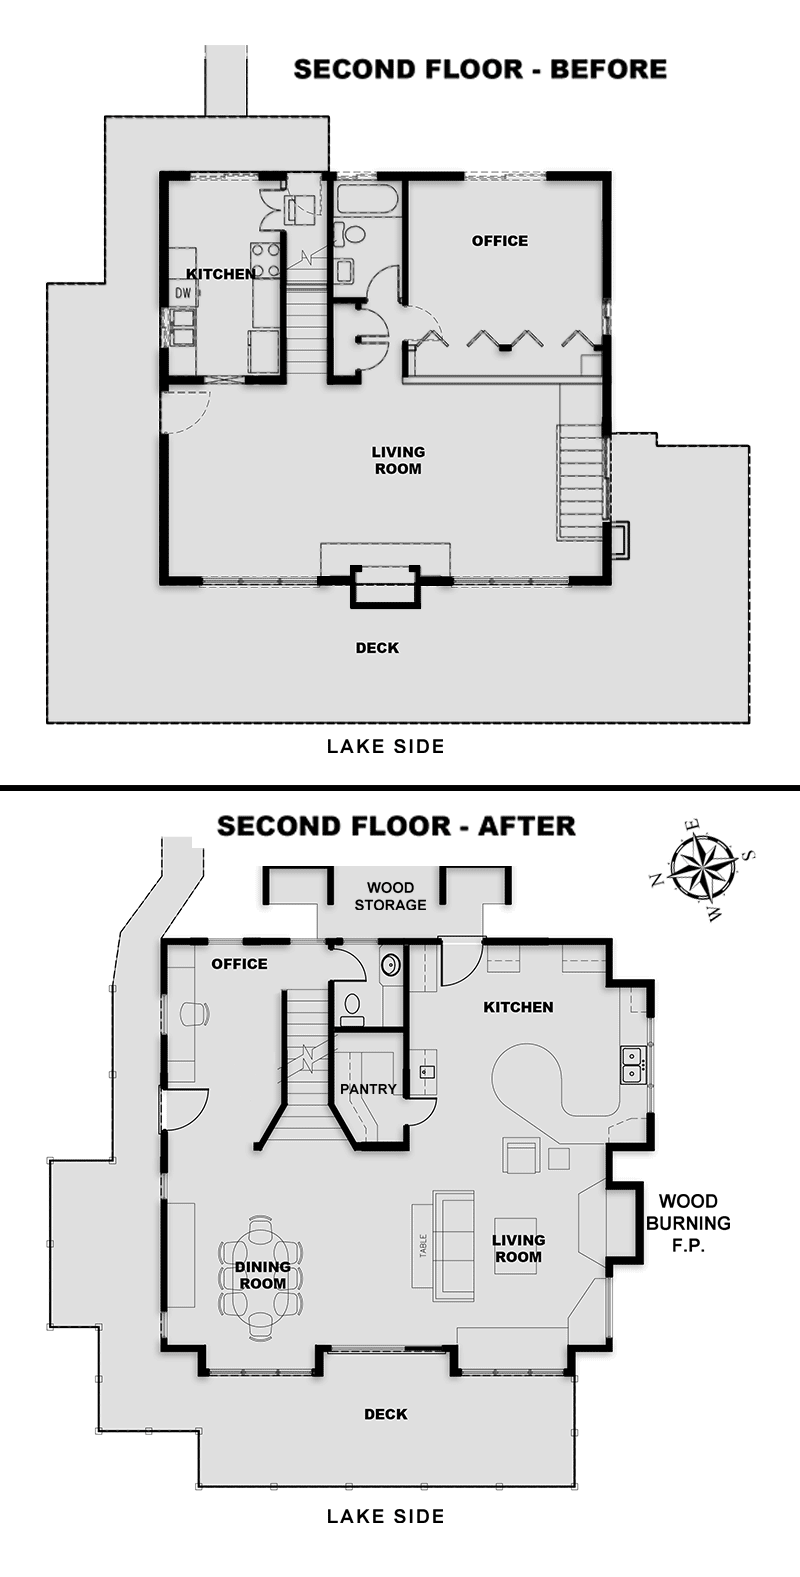 Engineering architecture and design of remodels and additions for Second floor addition floor plans